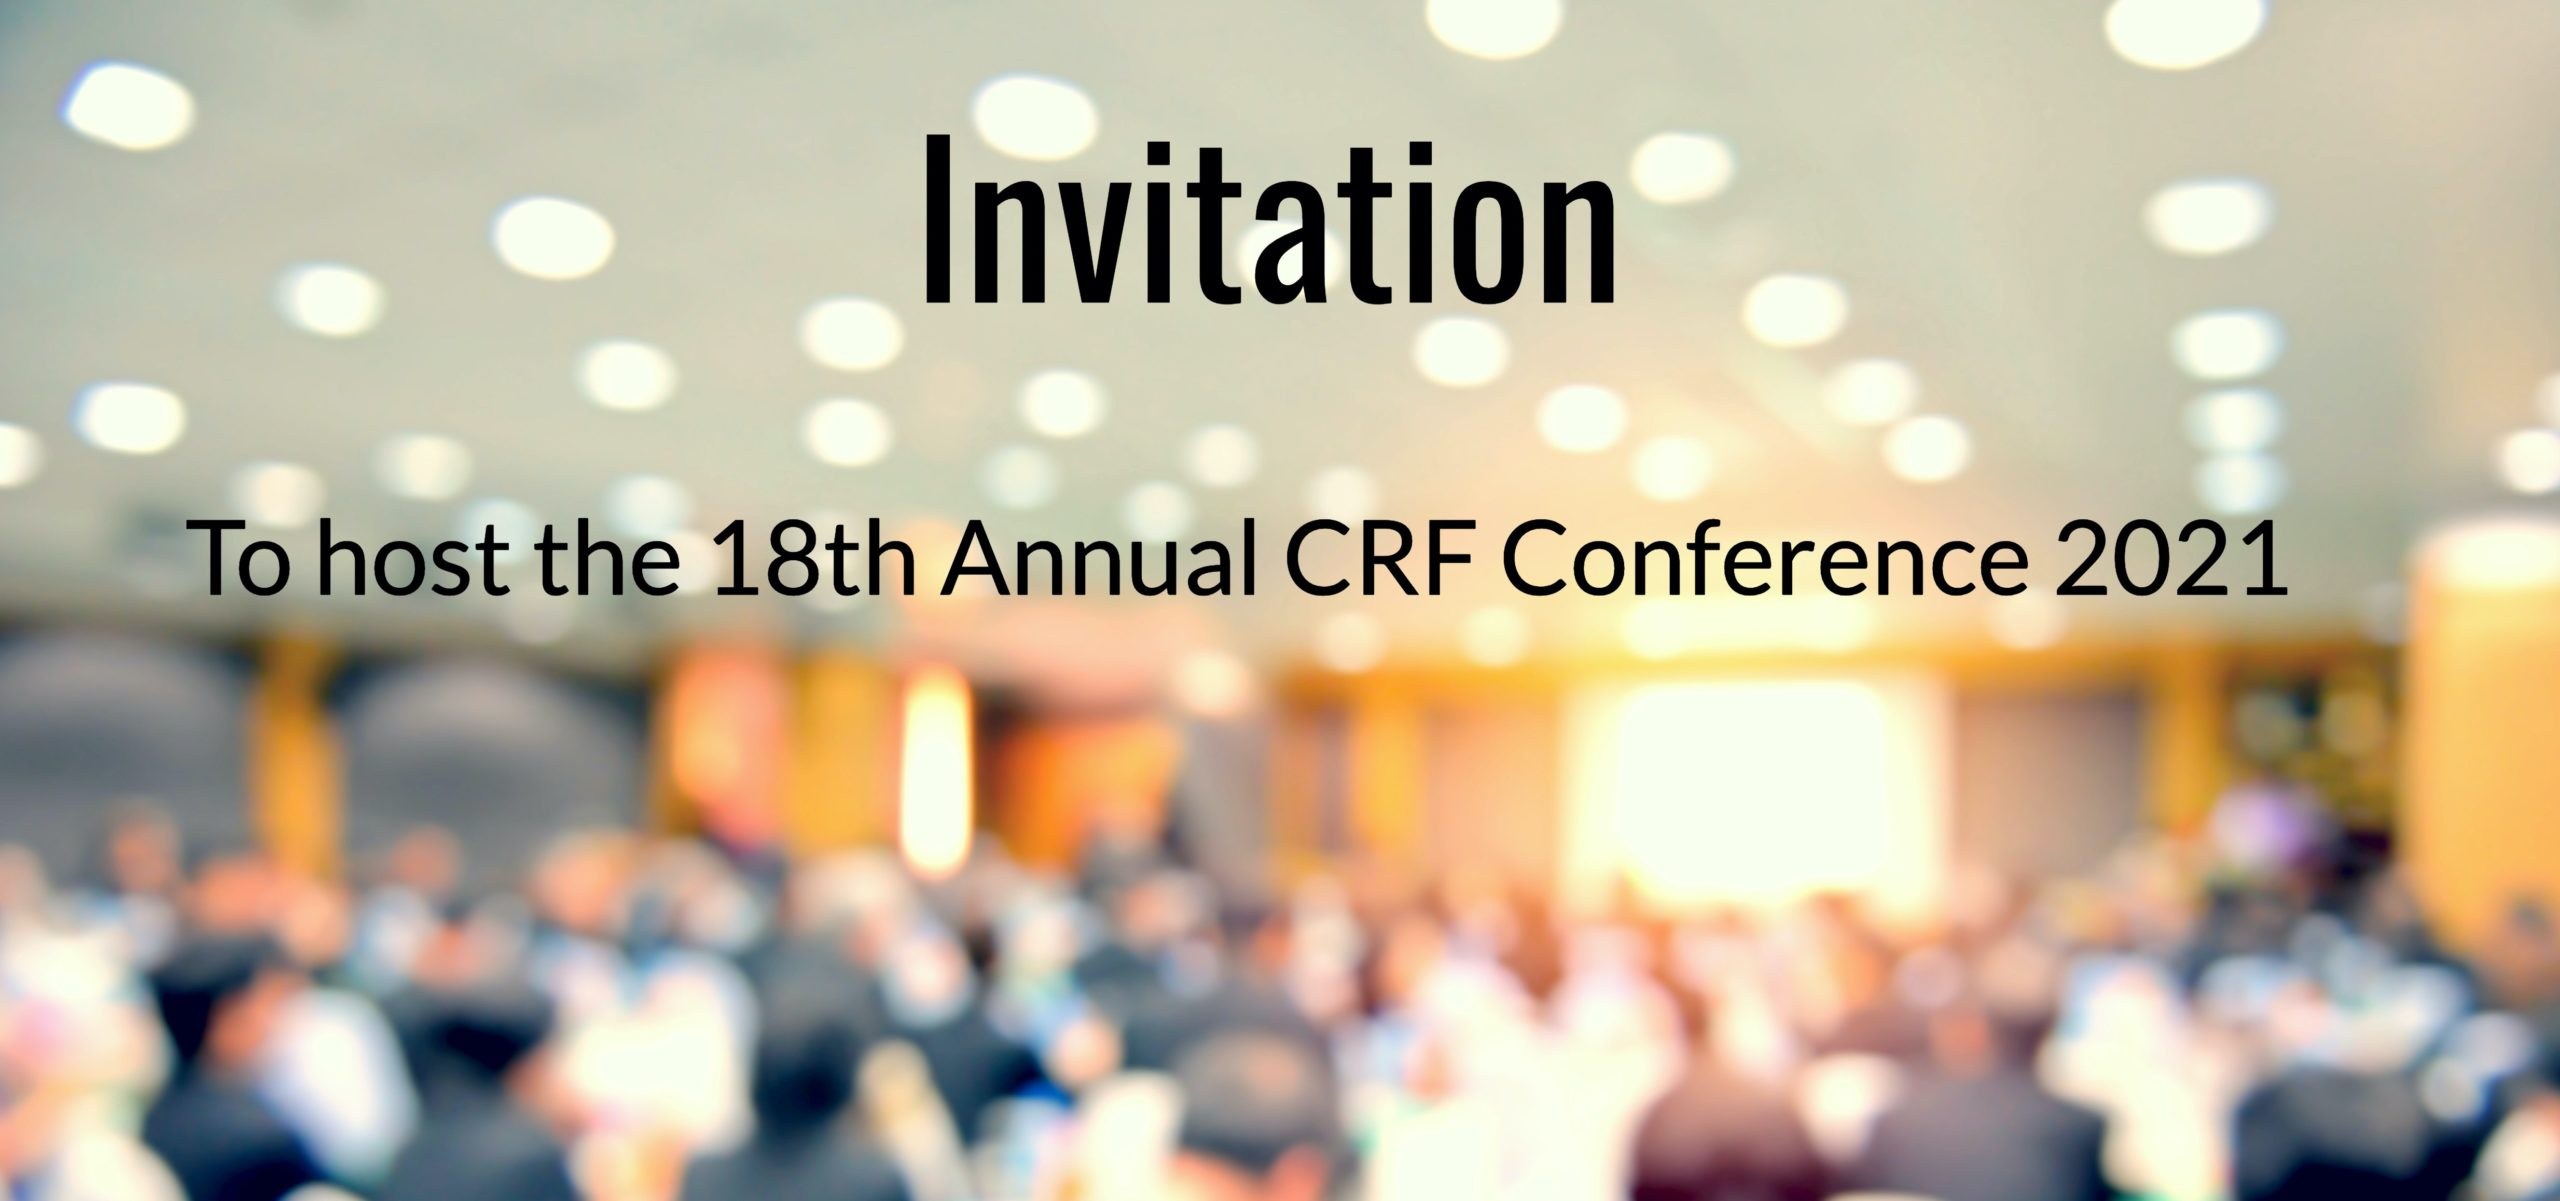 Invitation to Host the 18th Annual CRF Conference 2021